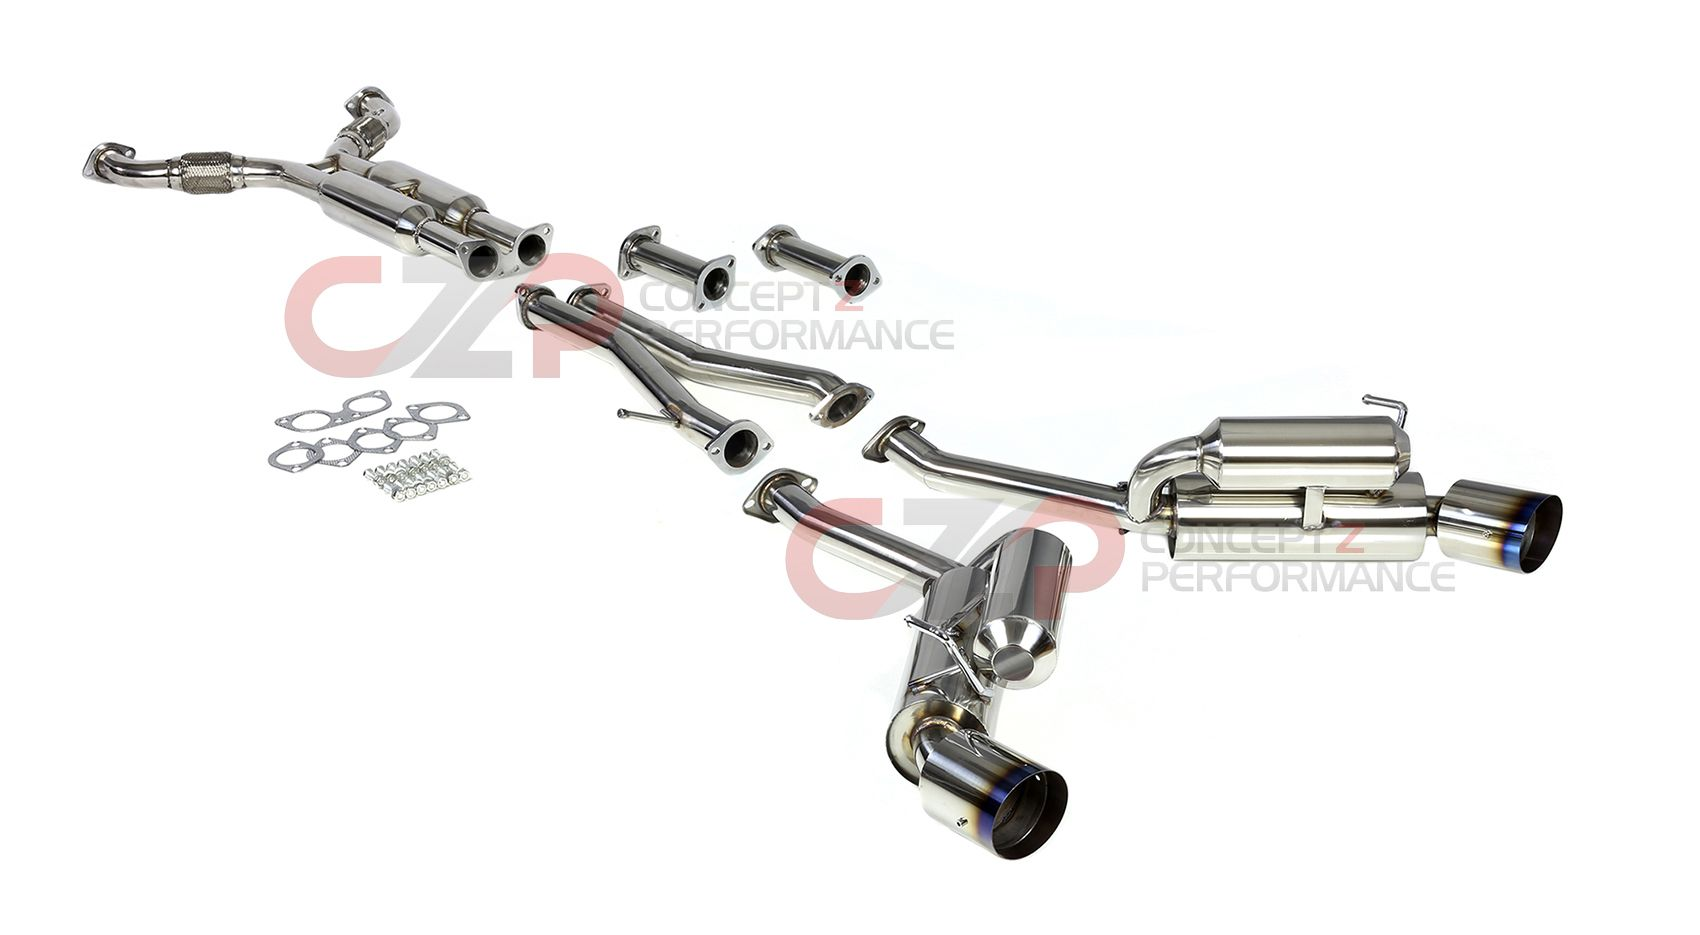 V35 Exhaust System Exhaust Systems Amp Kits